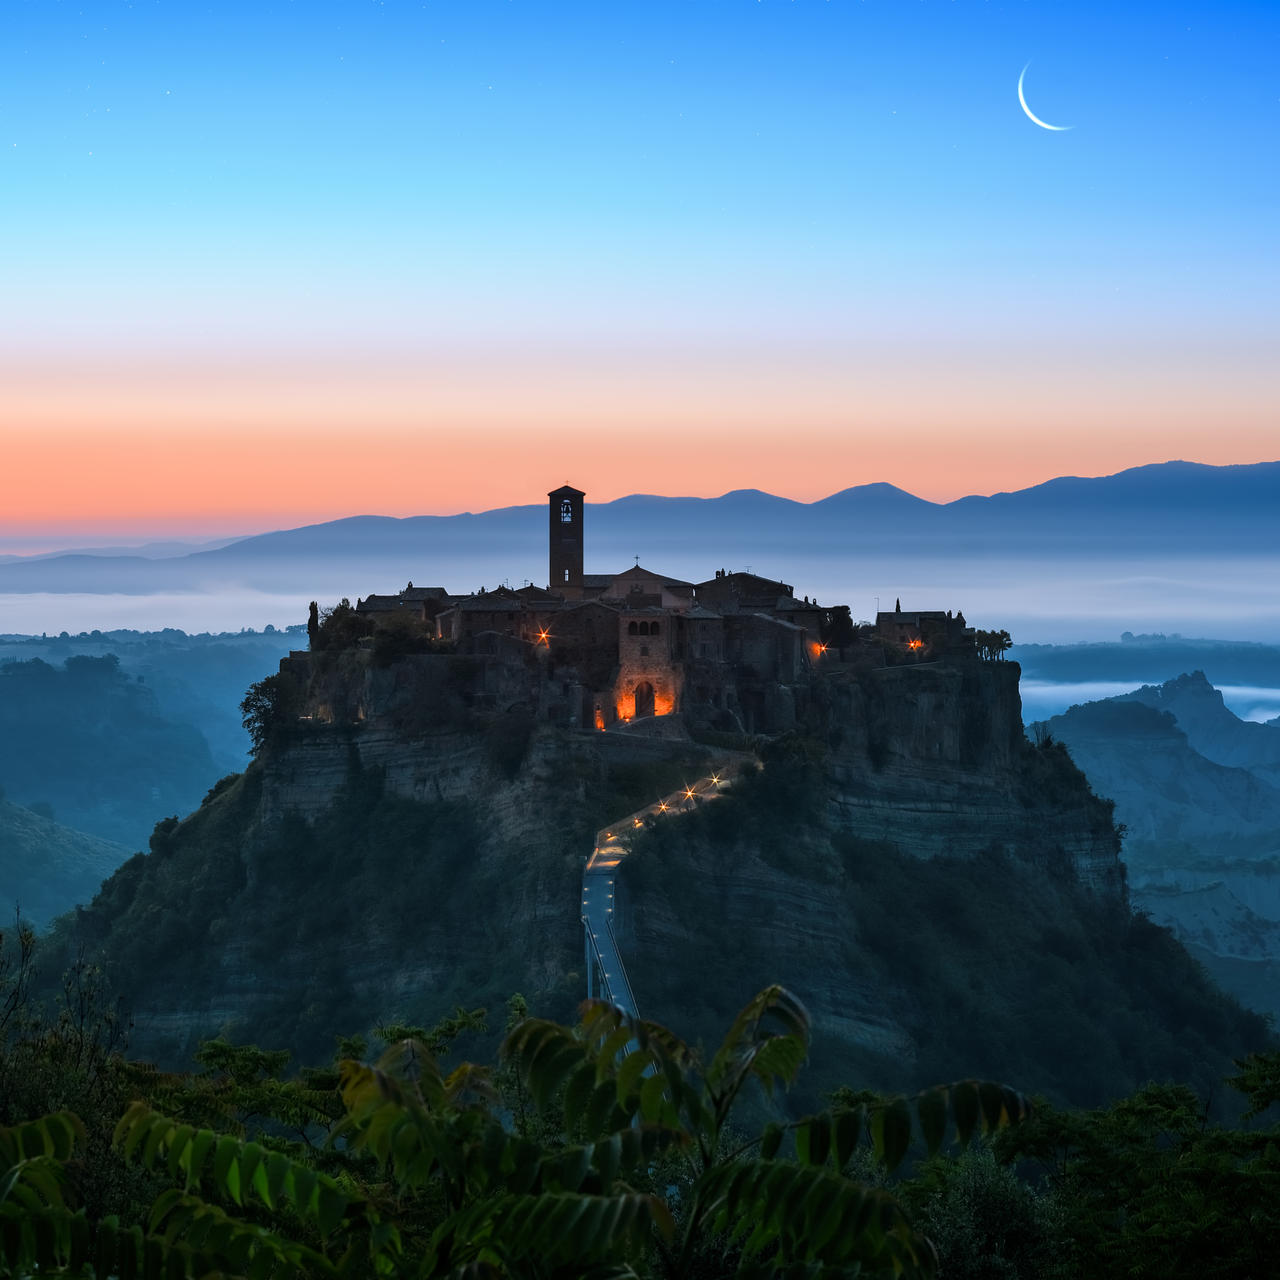 Civita di Bagnoregio by AlexGutkin on DeviantArt